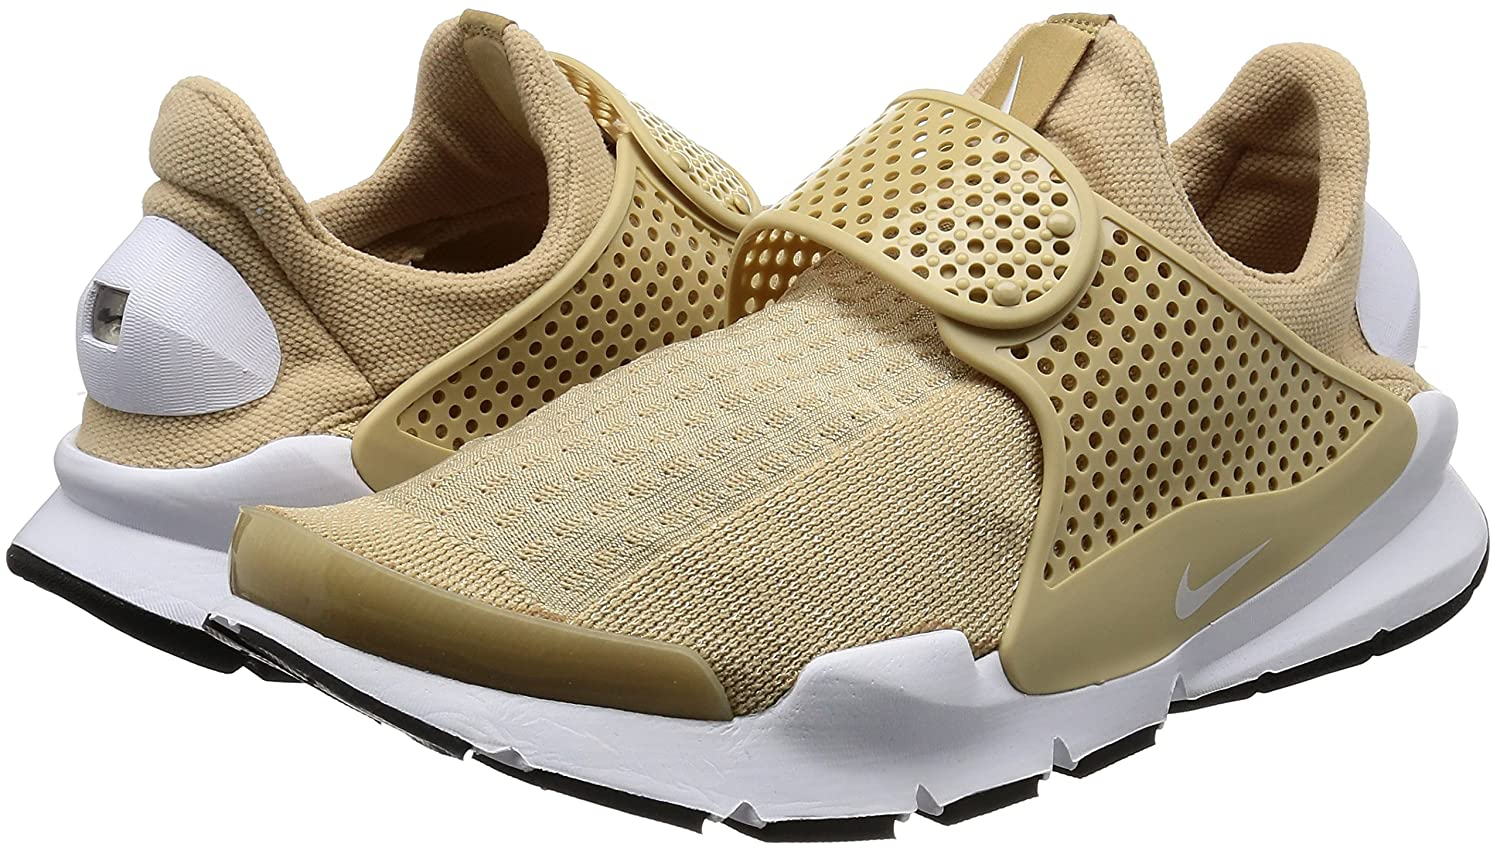 NIKE Womens Sock Dart Running Shoes B01MT9Z7IJ 9 B(M) US|Linen White Black 200